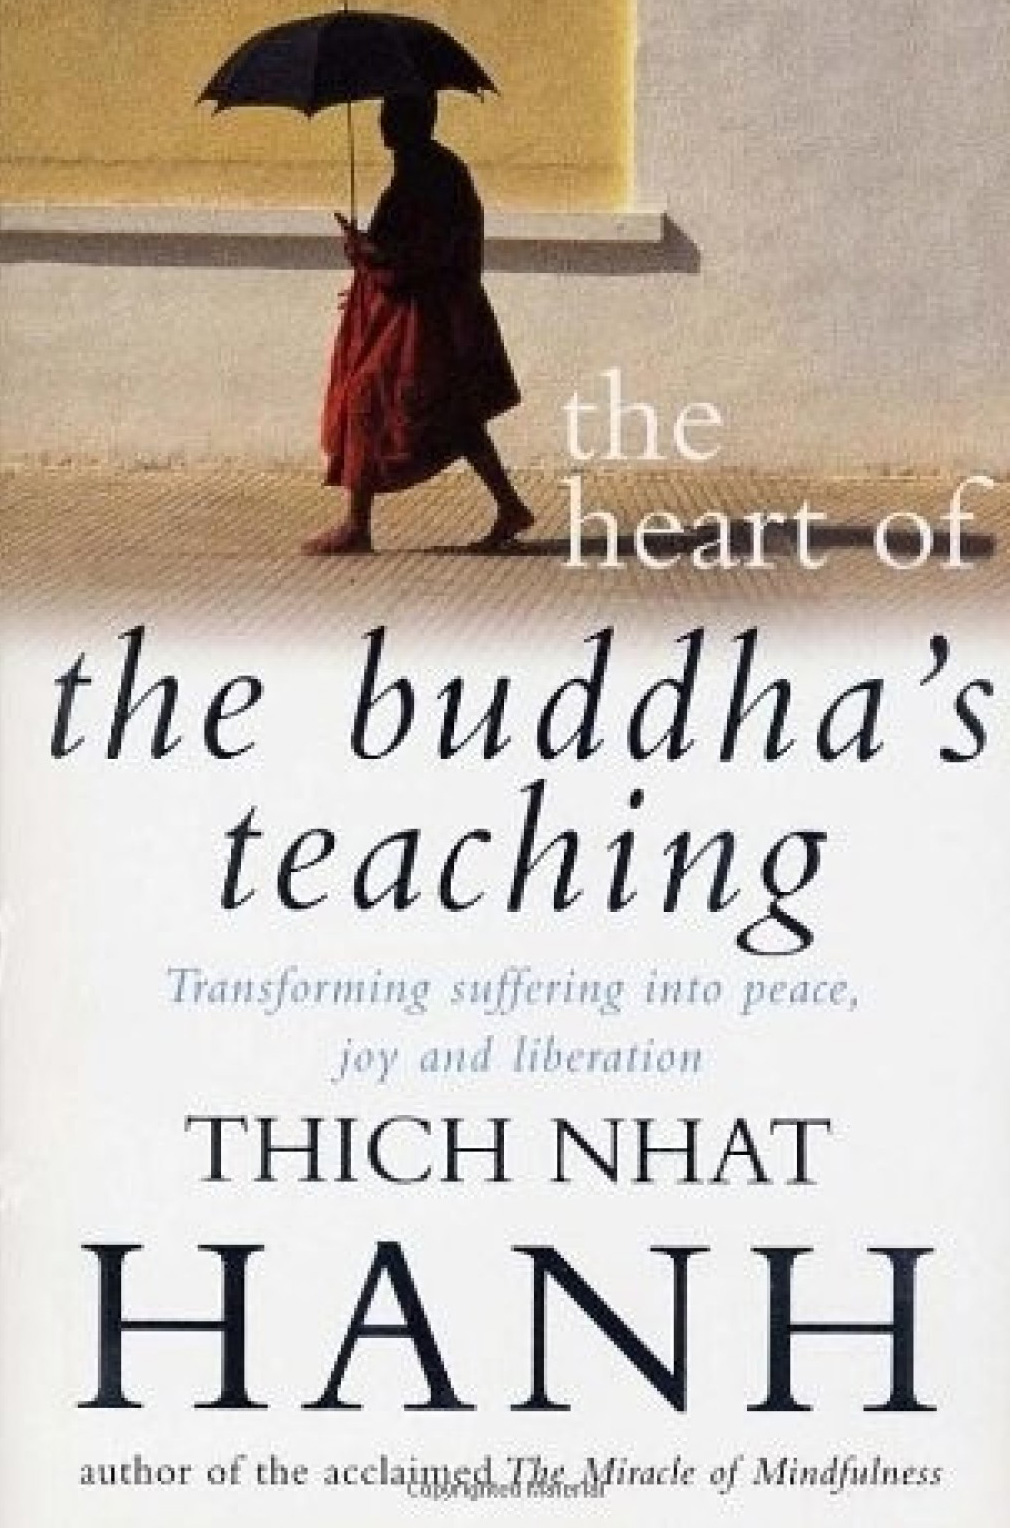 The Heart of the Buddha's Teaching: Transforming Suffering into Peace, Joy, and Liberation by Thich Nhat Hanh